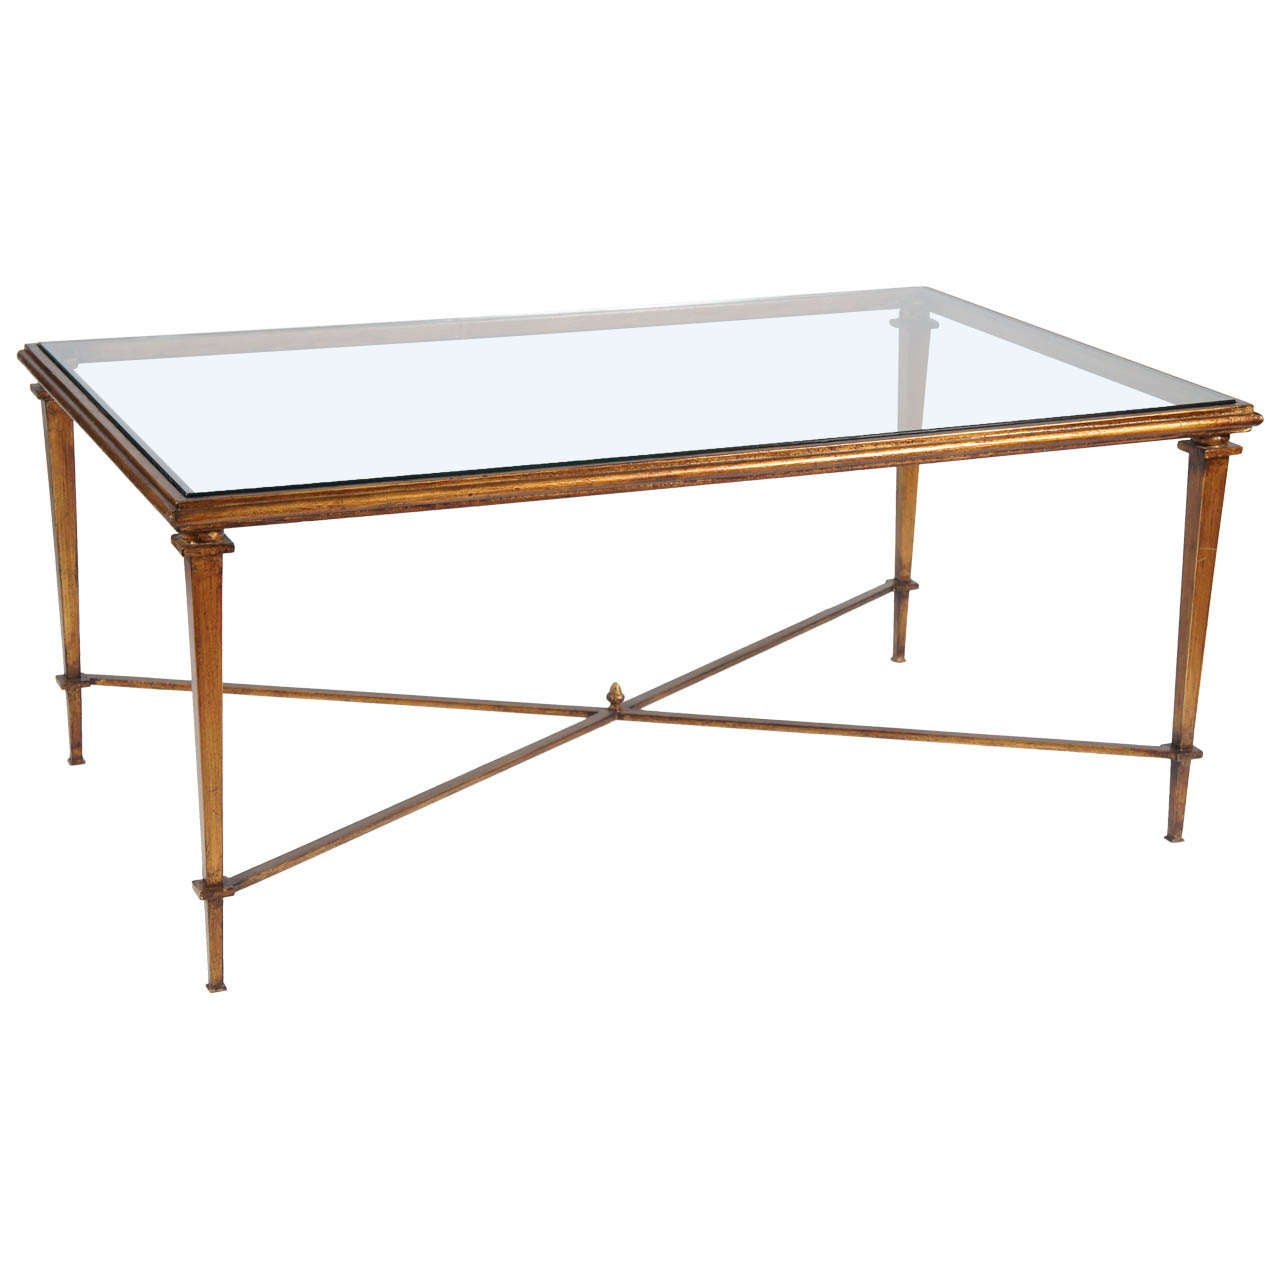 Neoclassical style bronze metal coffee table with glass Glass coffee table tops